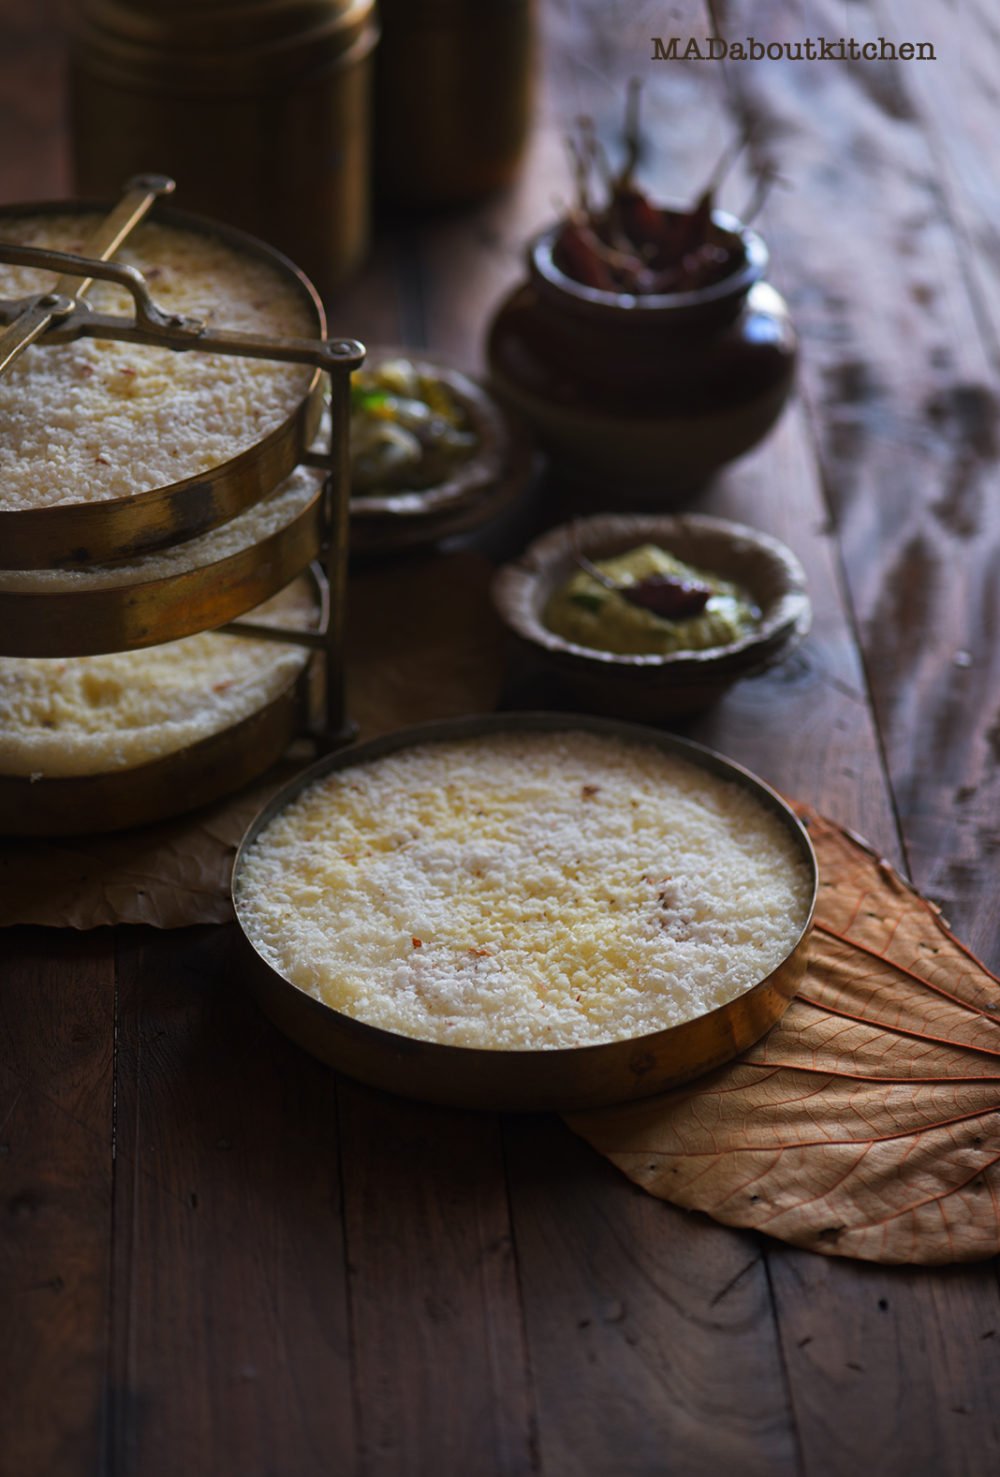 Tari , Steamed Pancakes are a speciality in the Malnad region of Karnataka, India. The very healthy, simple Tari is best served hot along with some spicy chutneys and spicy curries.